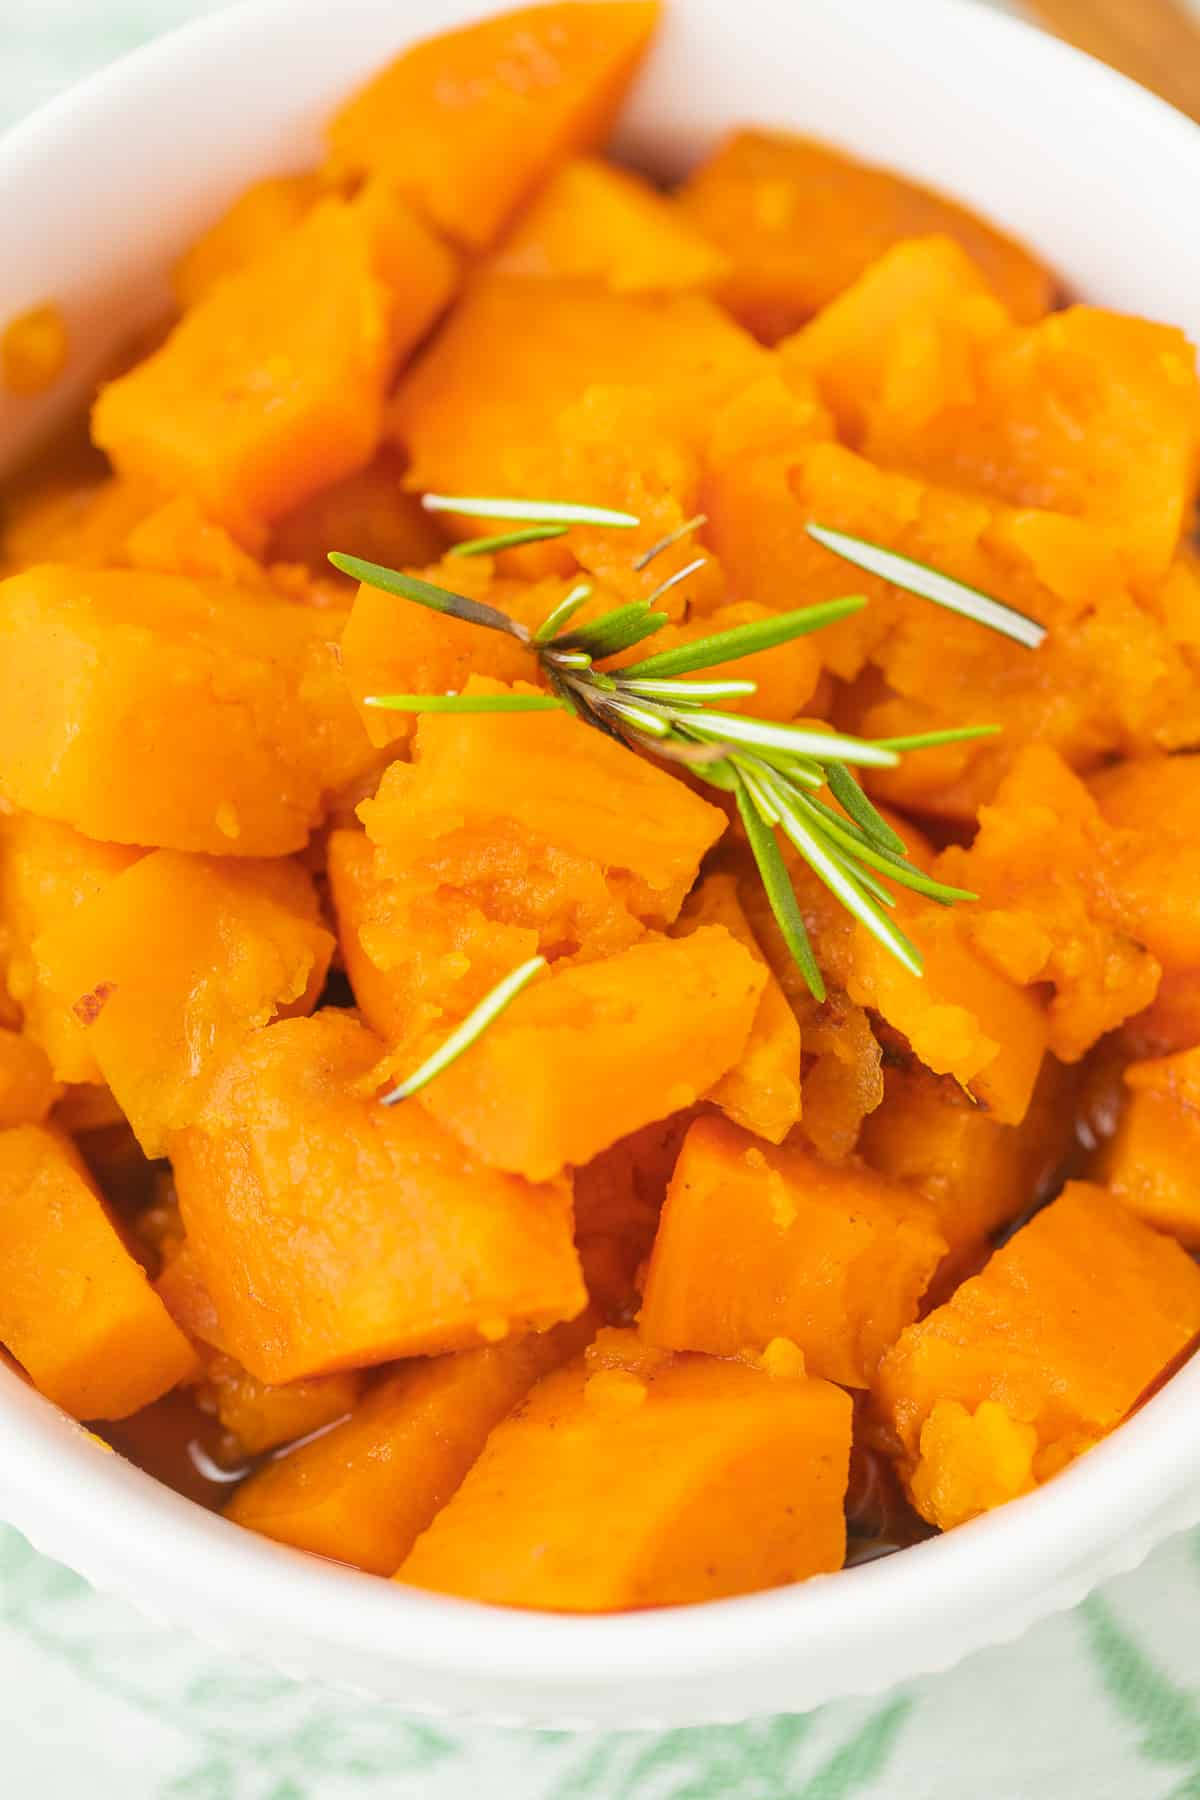 bowl of candied yams with rosemary on top